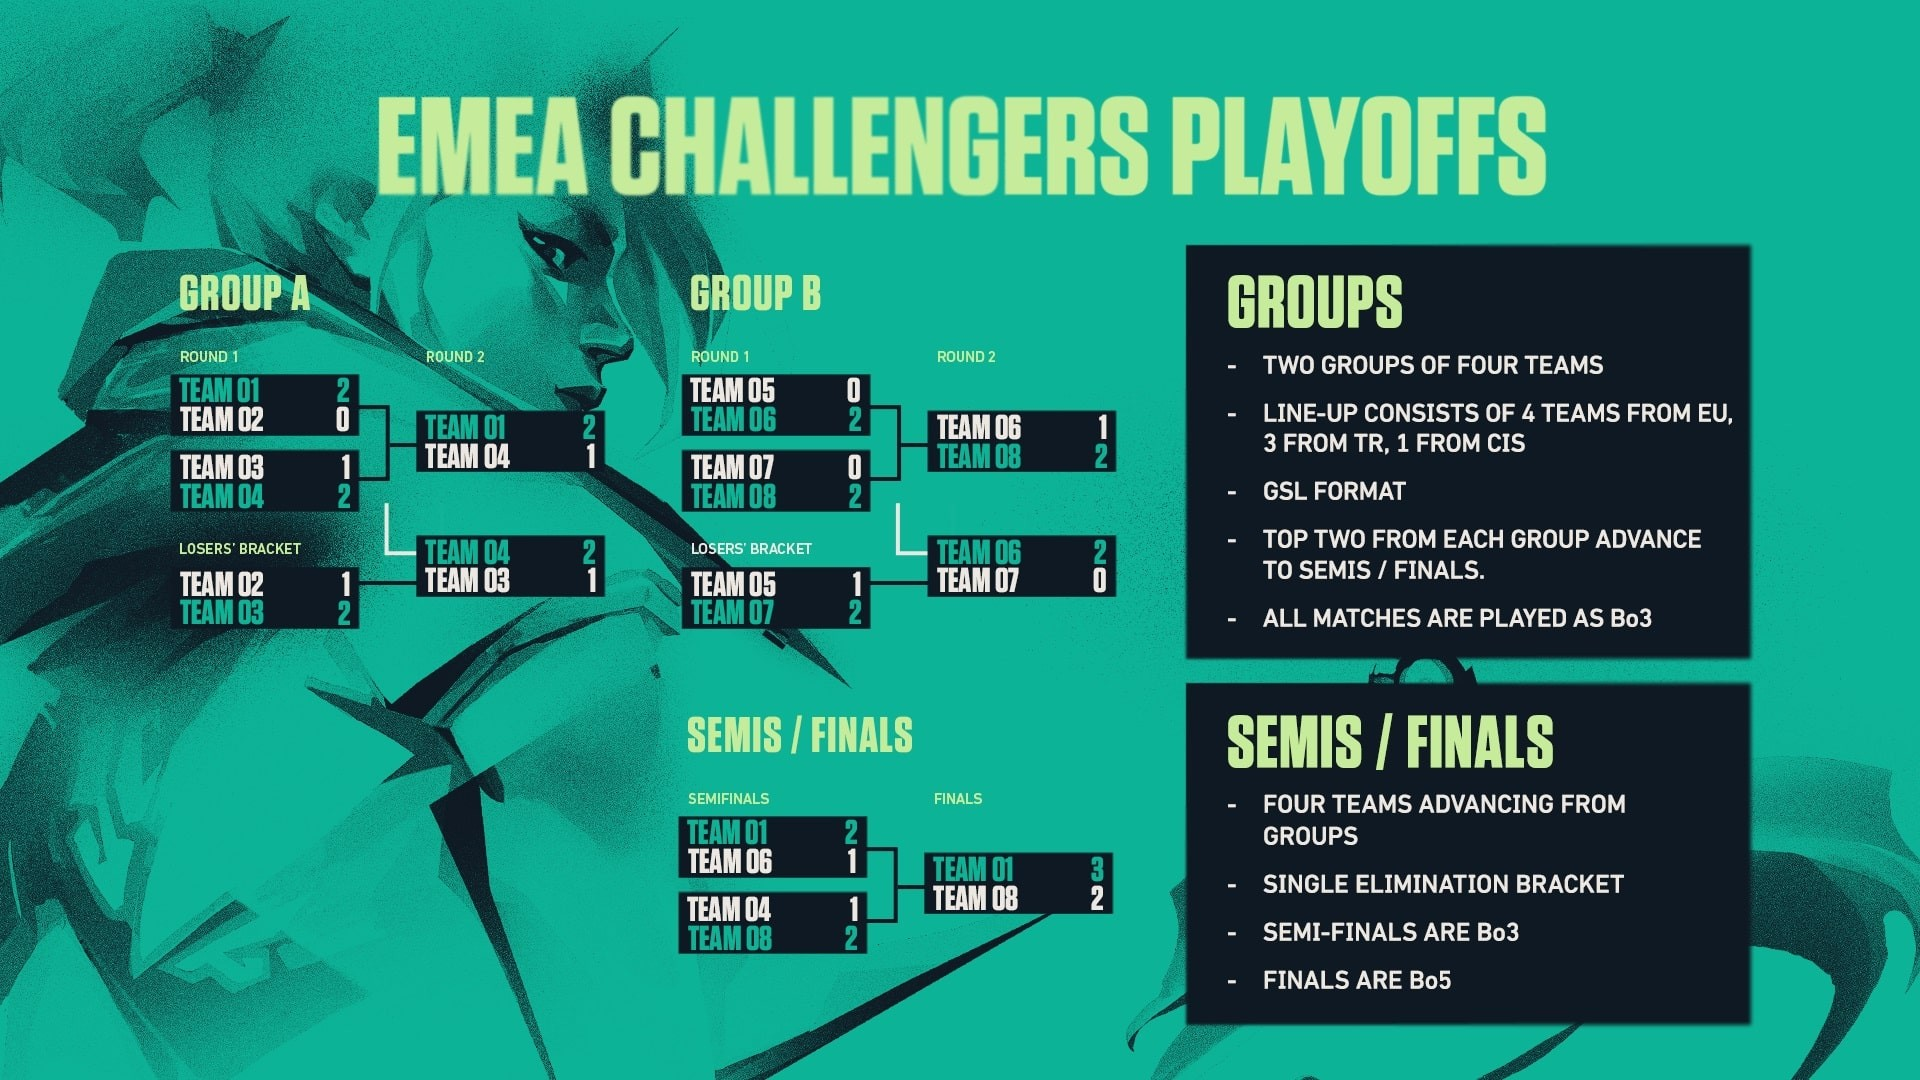 The EMEA Challengers Playoffs employ a GSL-like group stage and a single-elimination bracket from the semifinals on.